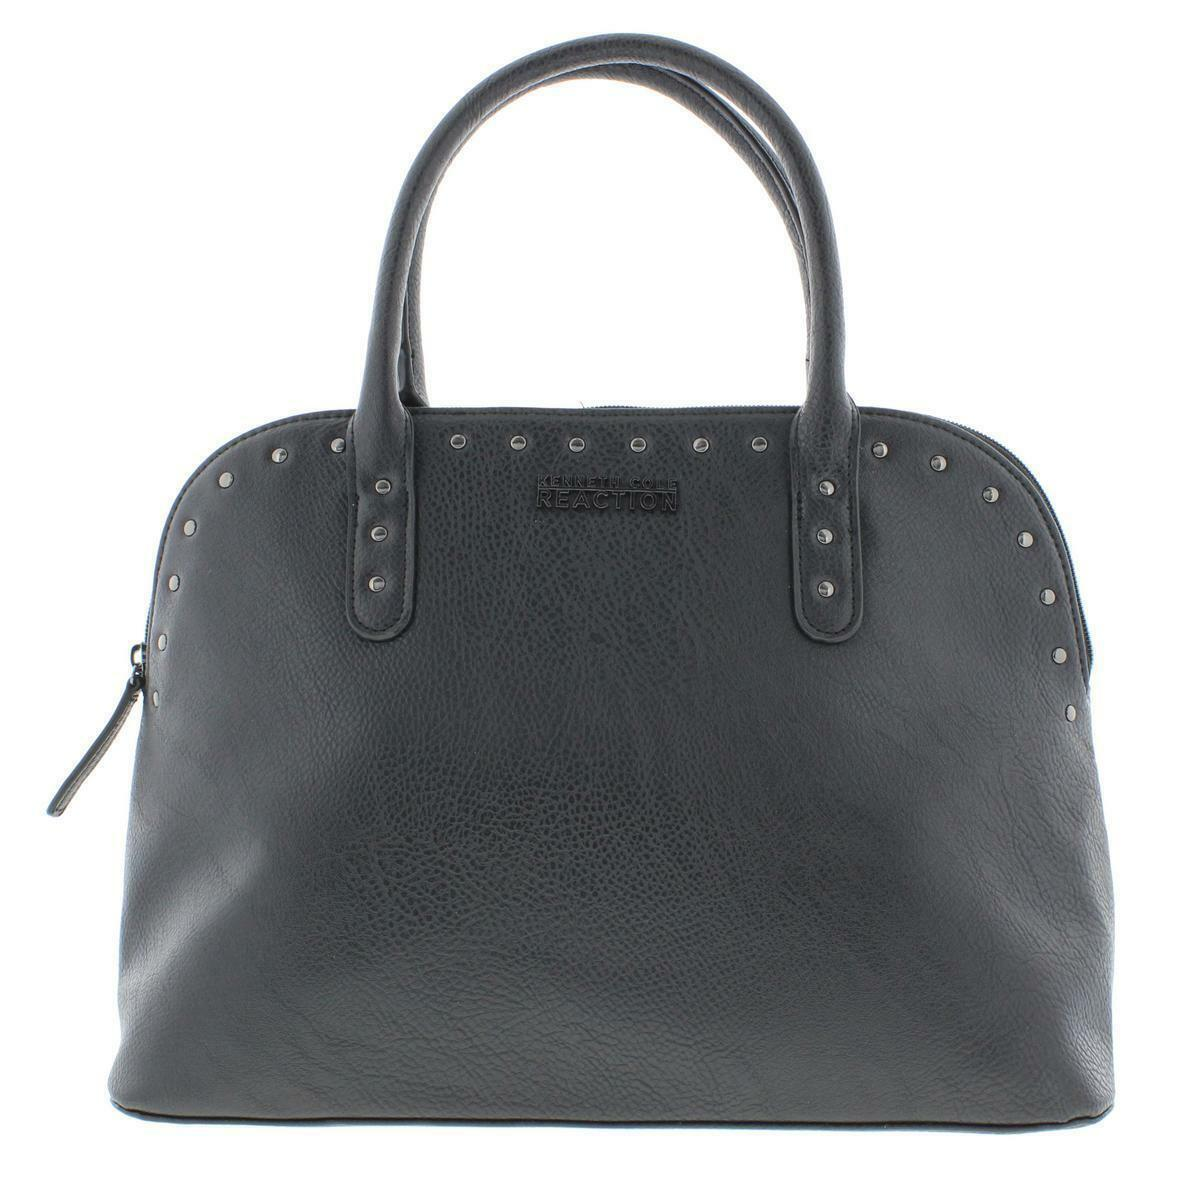 Kenneth Cole Reaction Bags Handbags